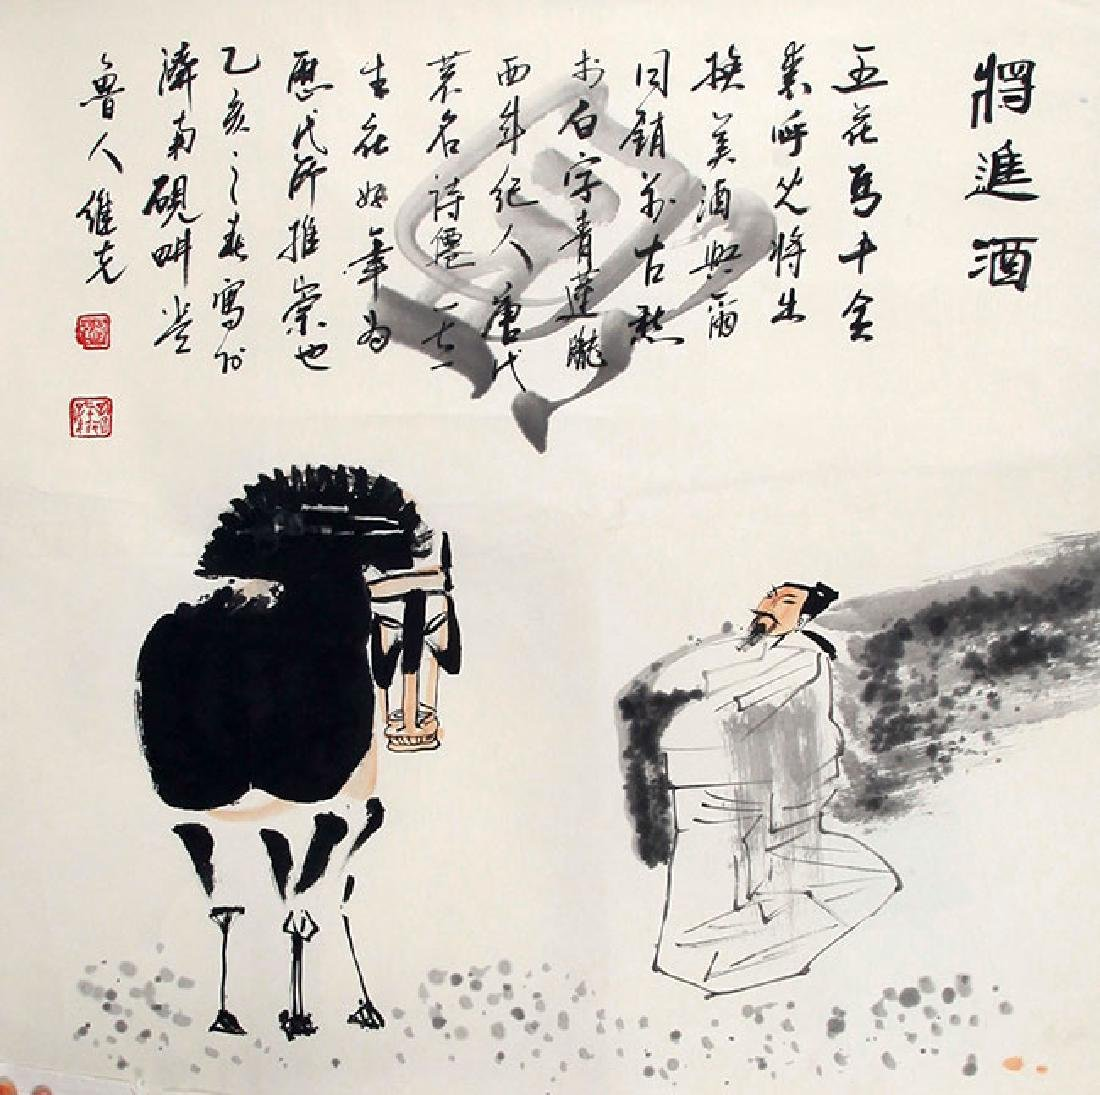 KONG WEI KE CHINESE PAINTING, ATTRIBUTED TO